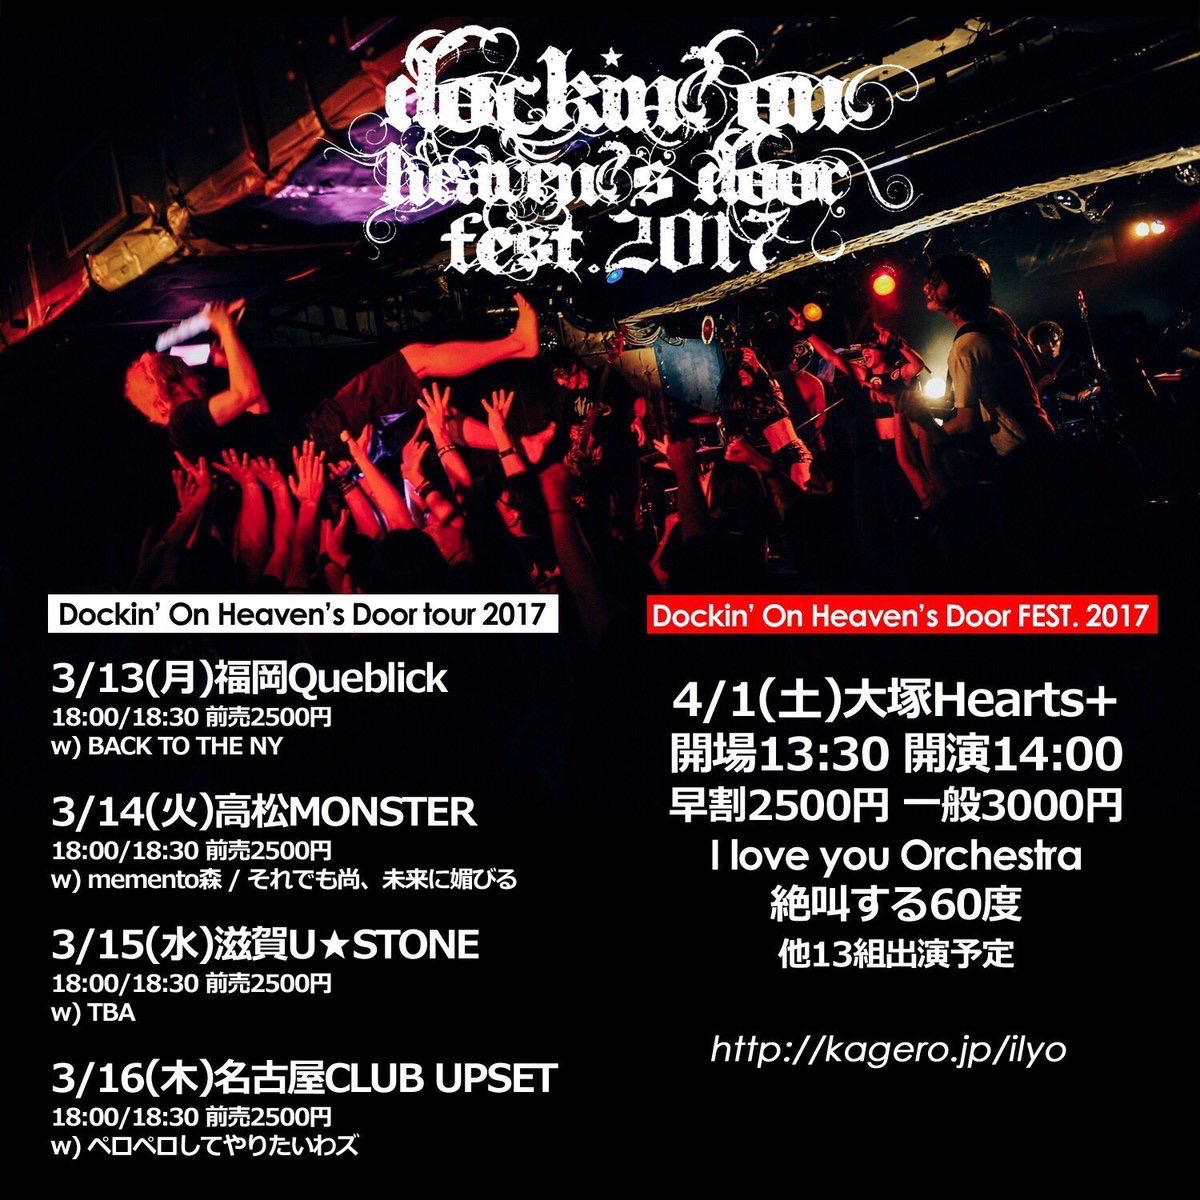 I love you Orchestra×絶叫する60度「Dockin' On Heaven's Door tour 2017」